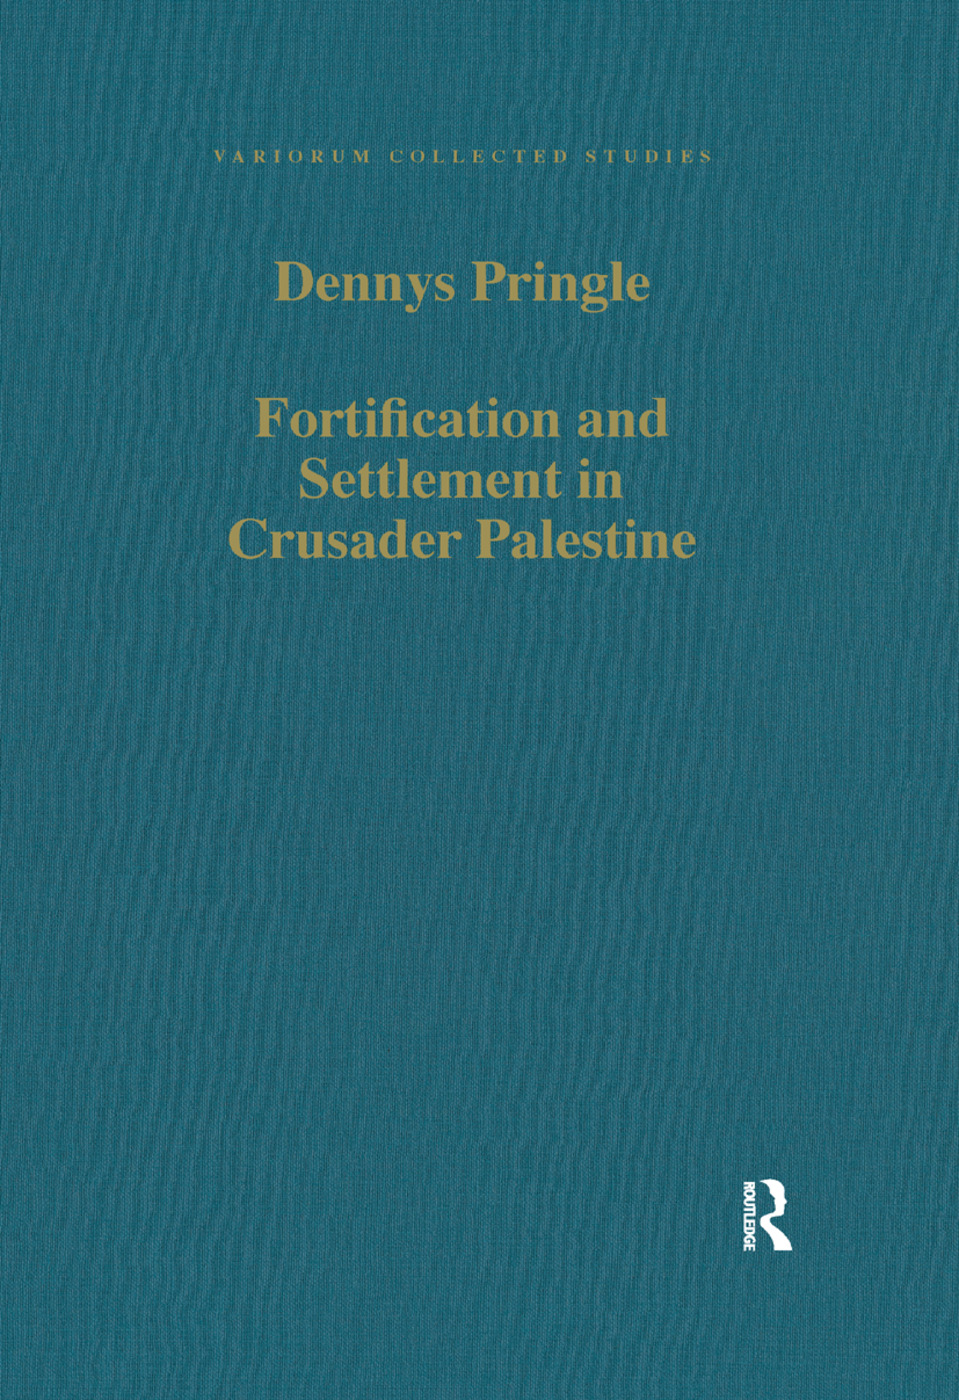 Fortification and Settlement in Crusader Palestine book cover